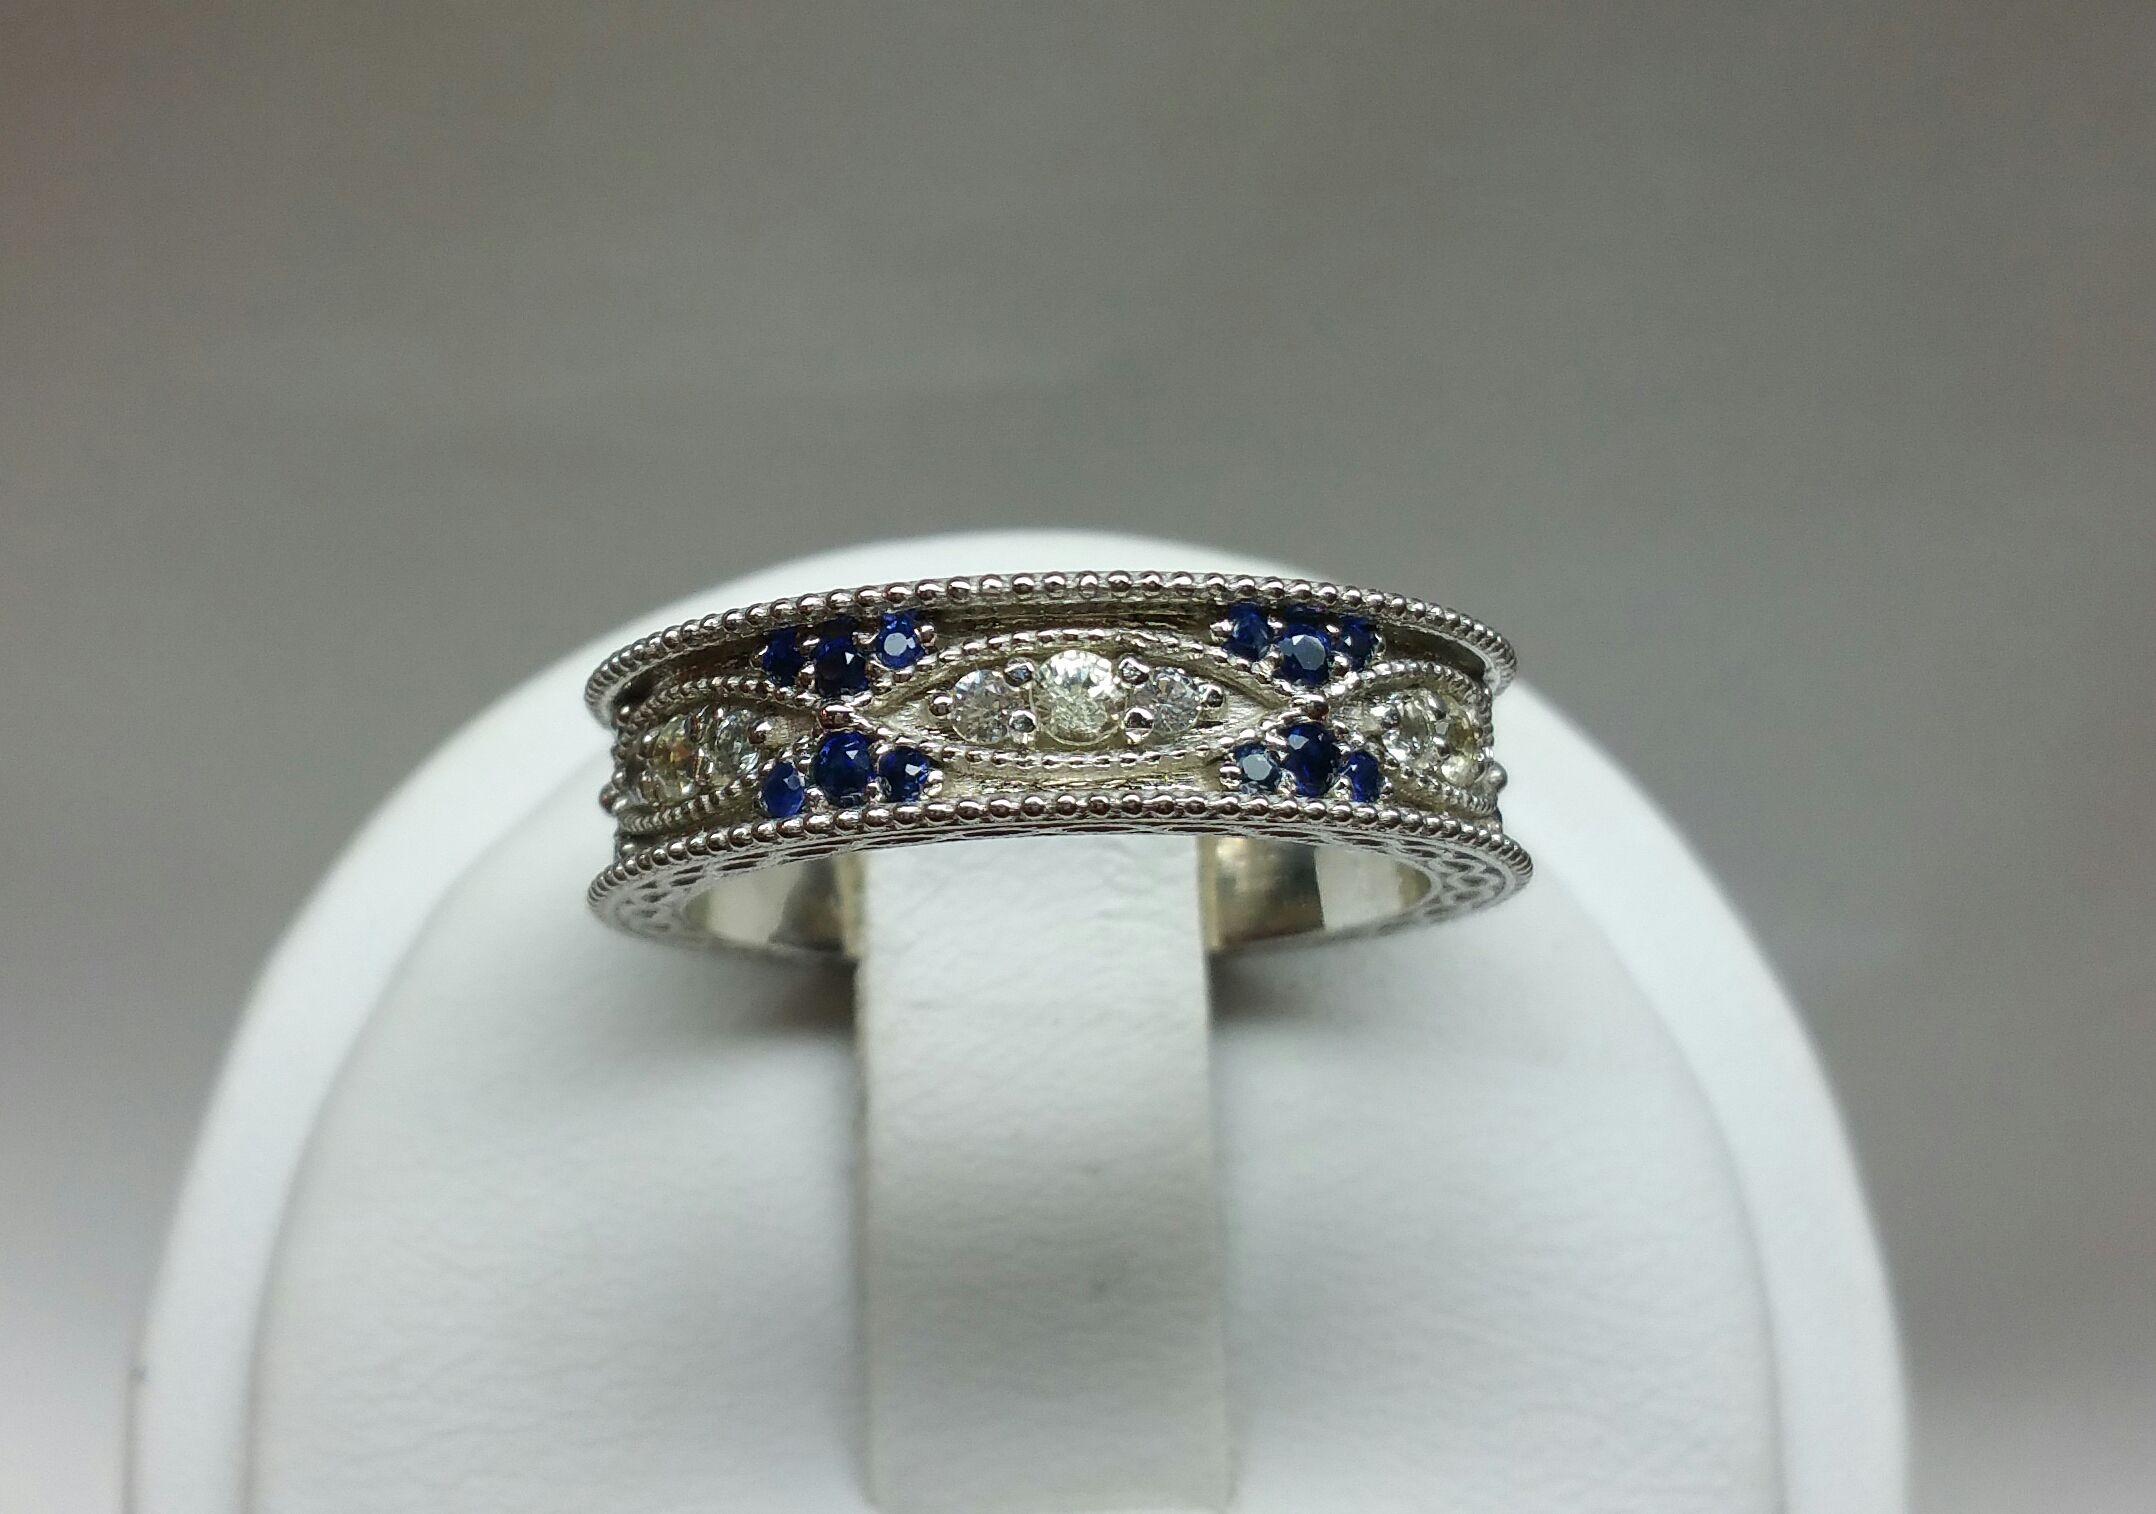 Custom Made Vintage Art Deco Wedding Band With Natural White And Blue Shires